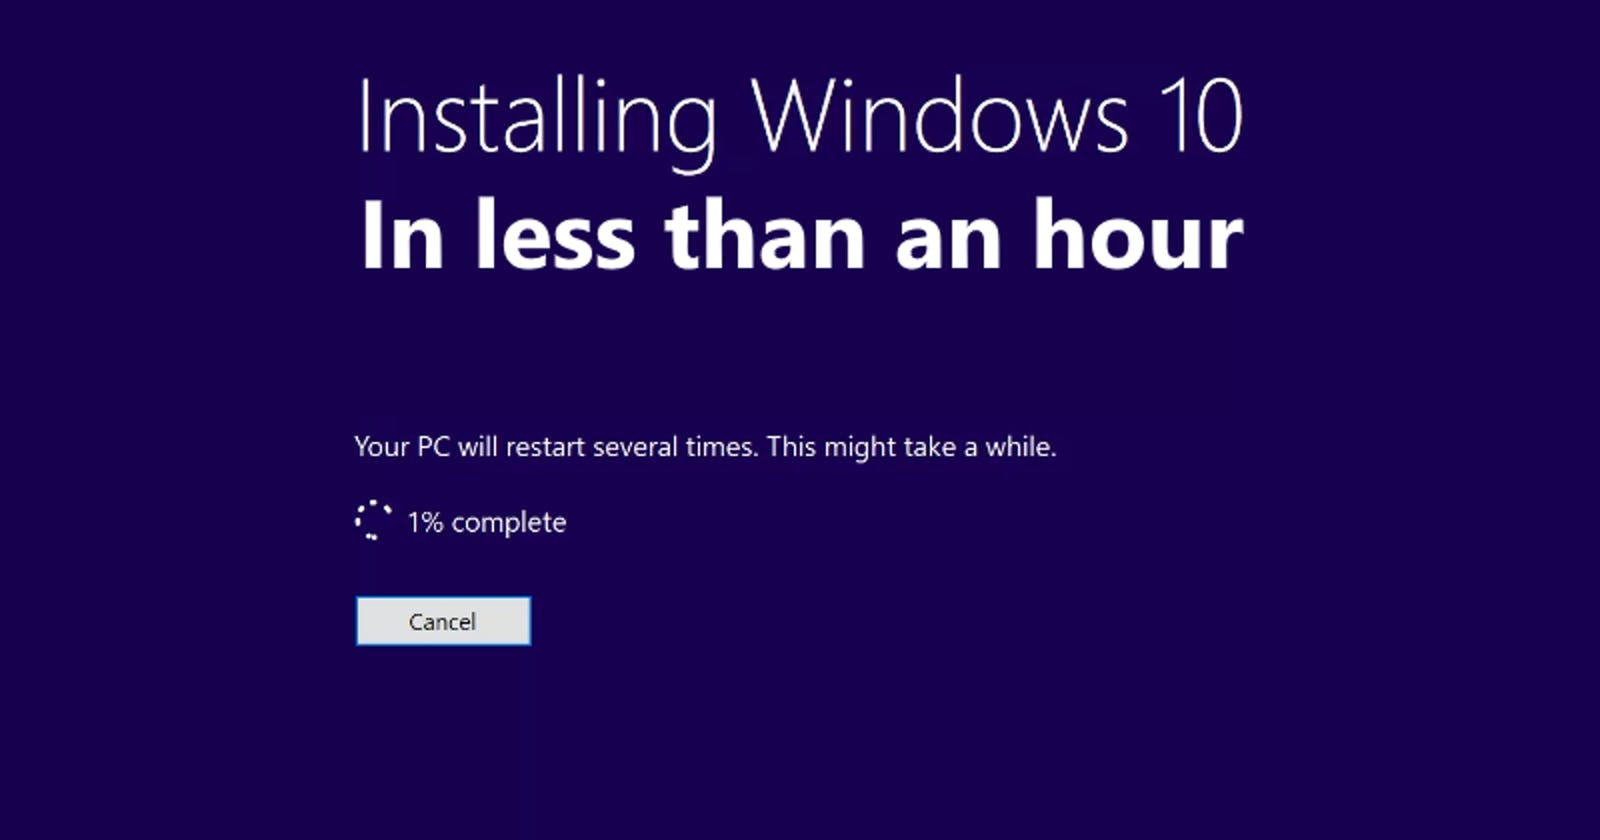 Installing Windows in less than an hour